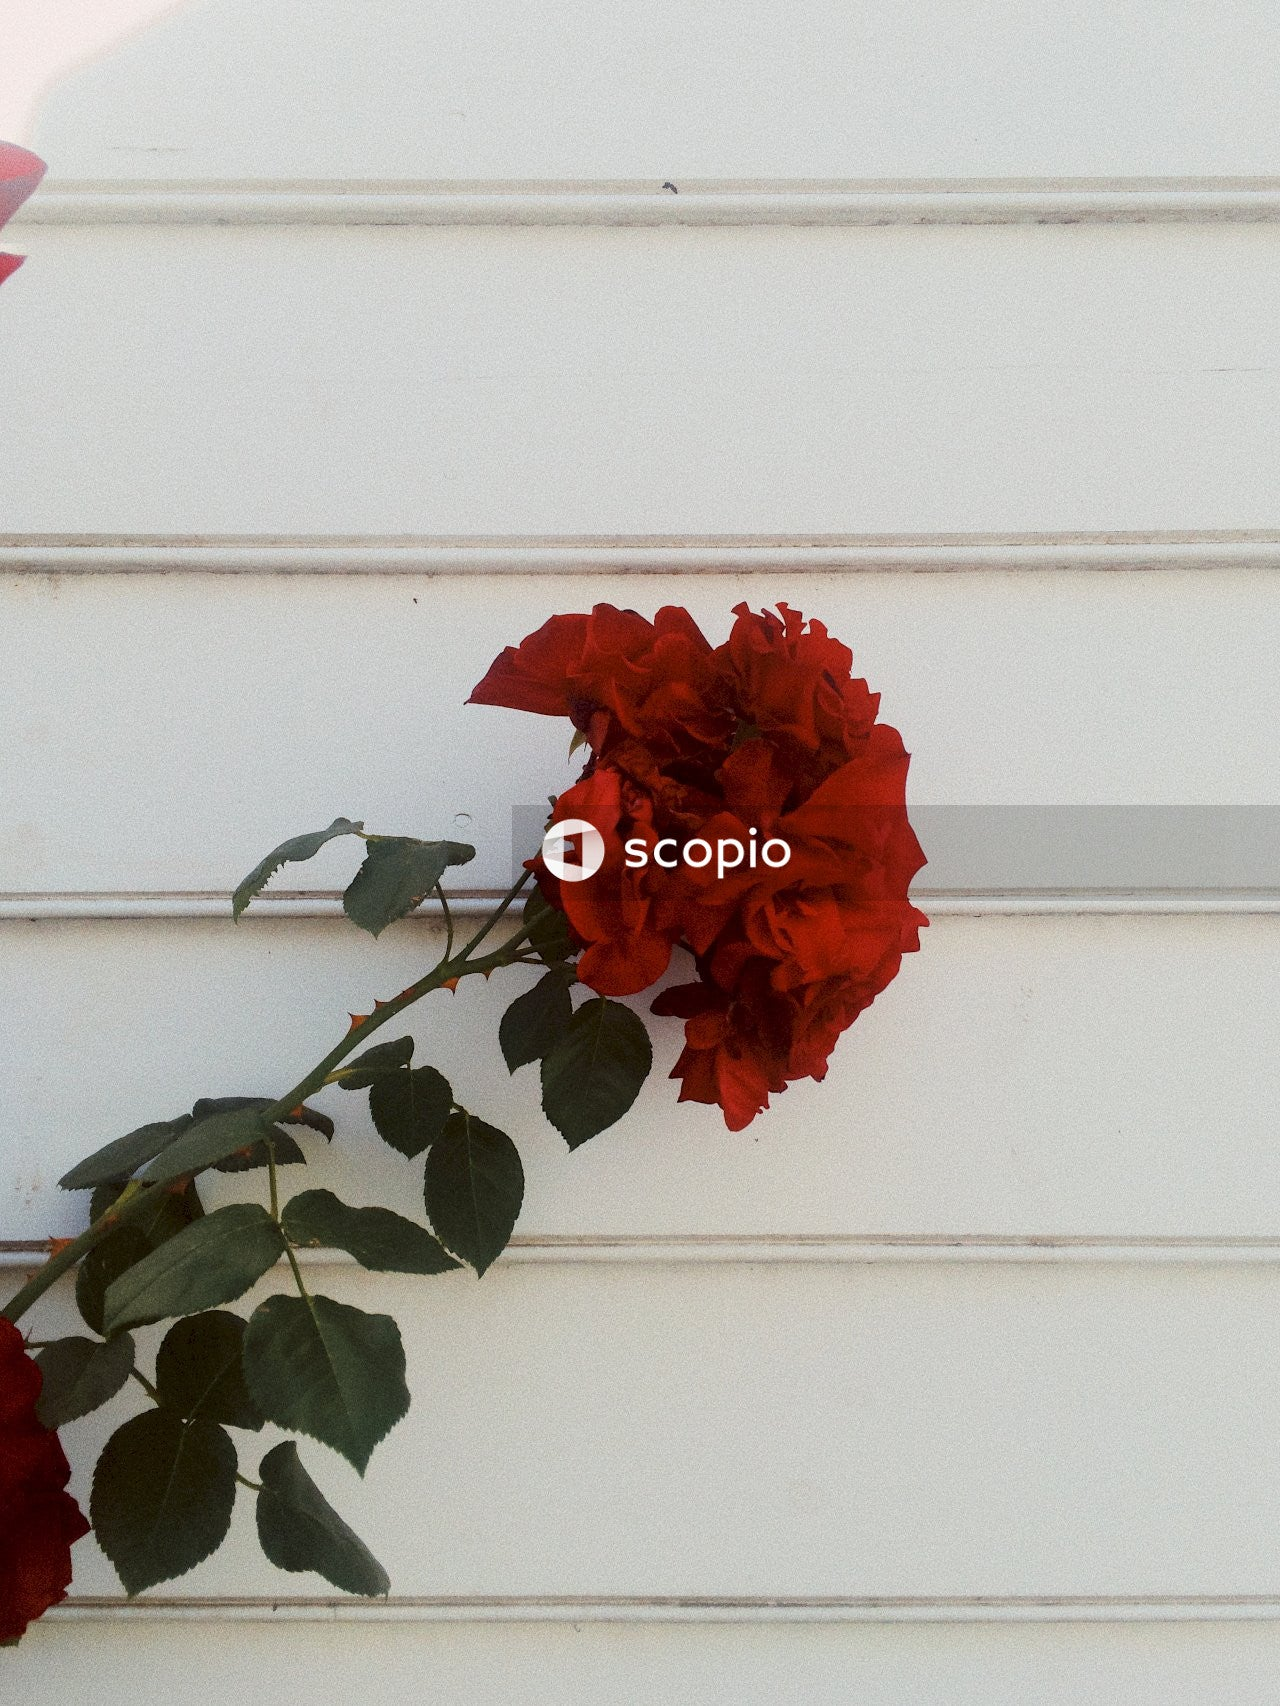 Red rose in front of white wall